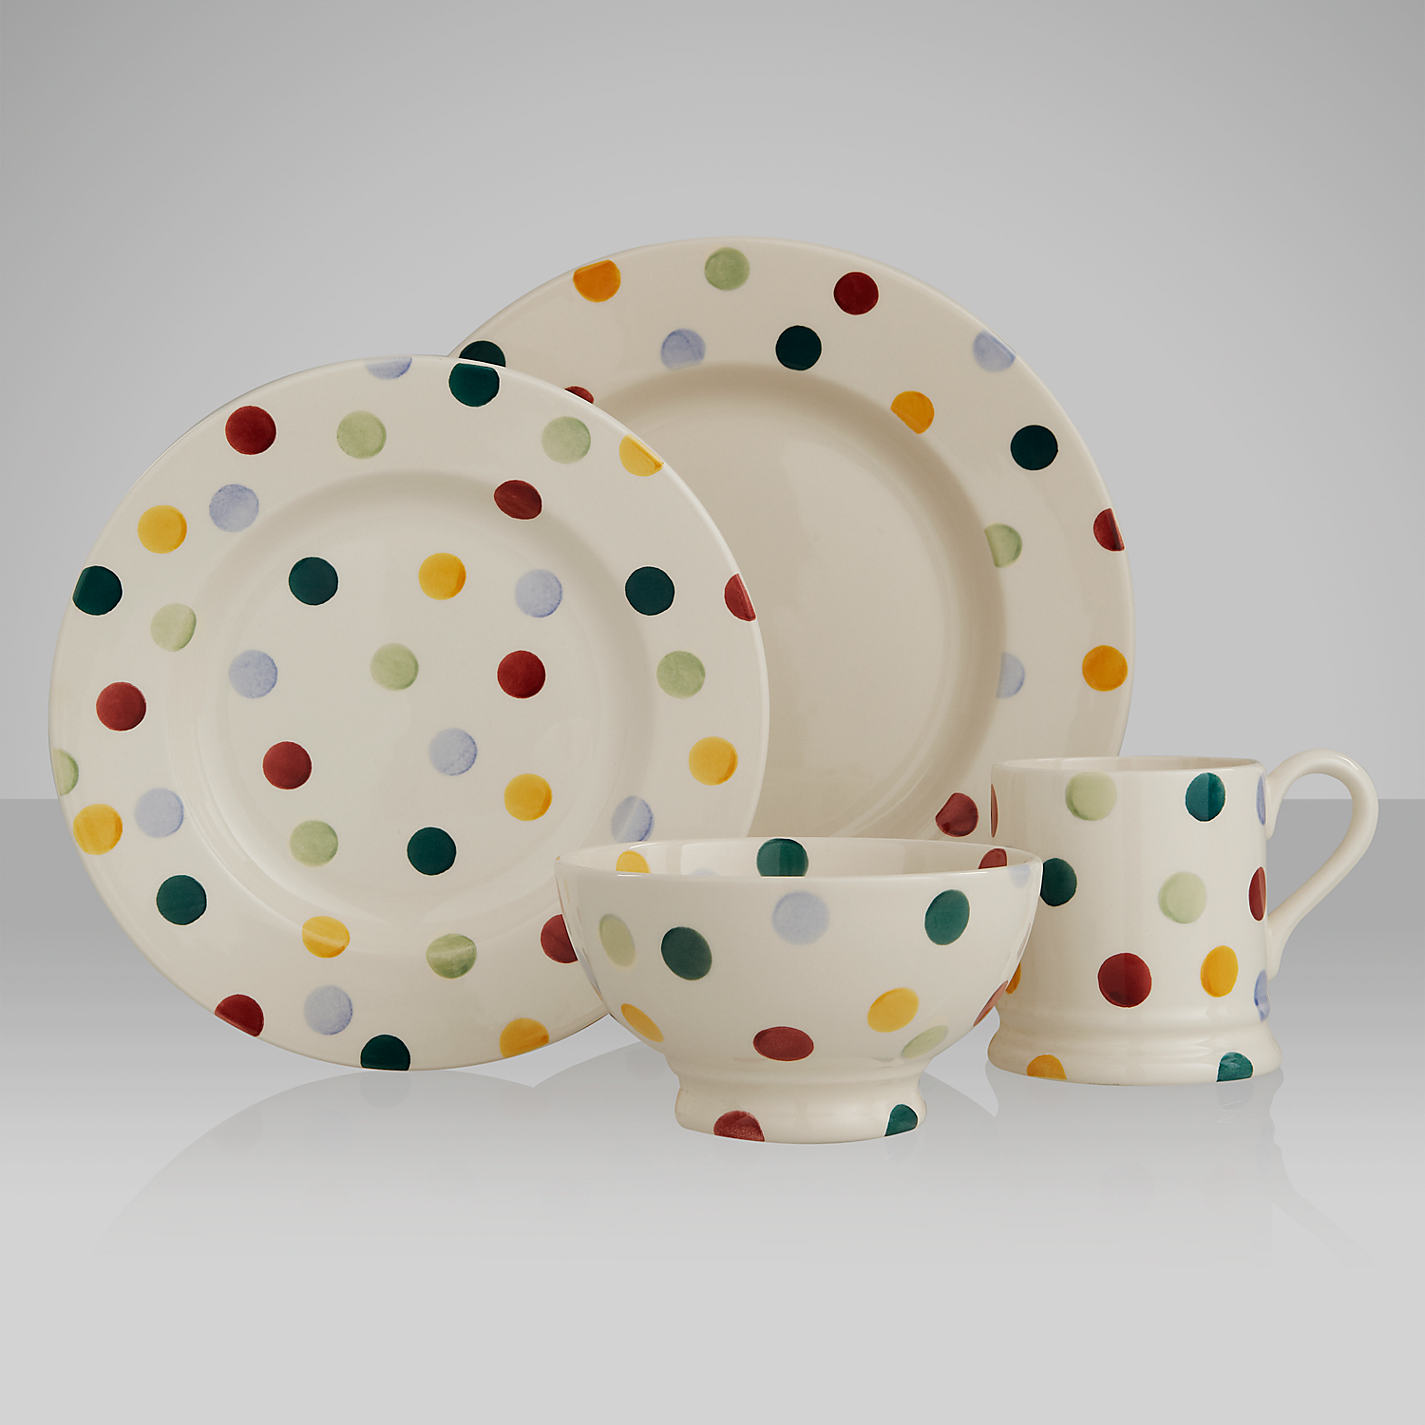 Emma Bridgewater Polka Dots - Home Safe. image number 18 of spotty tableware ... & Spotty Tableware \u0026 Pink Polka Dot Spotty Tableware Paper Napkins ...